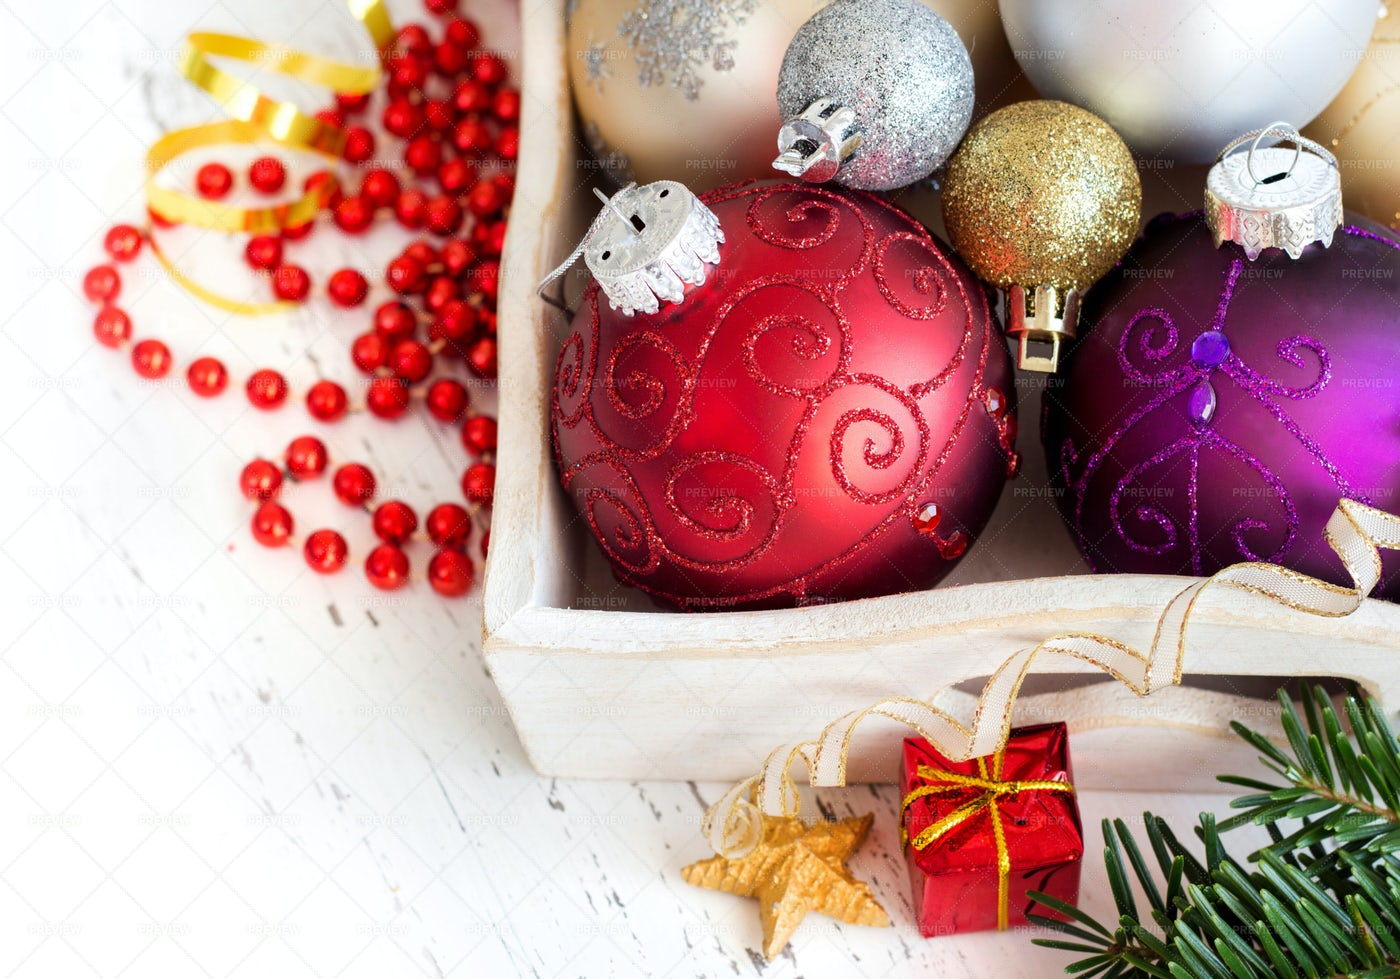 Wood Tray With Christmas Decorations: Stock Photos